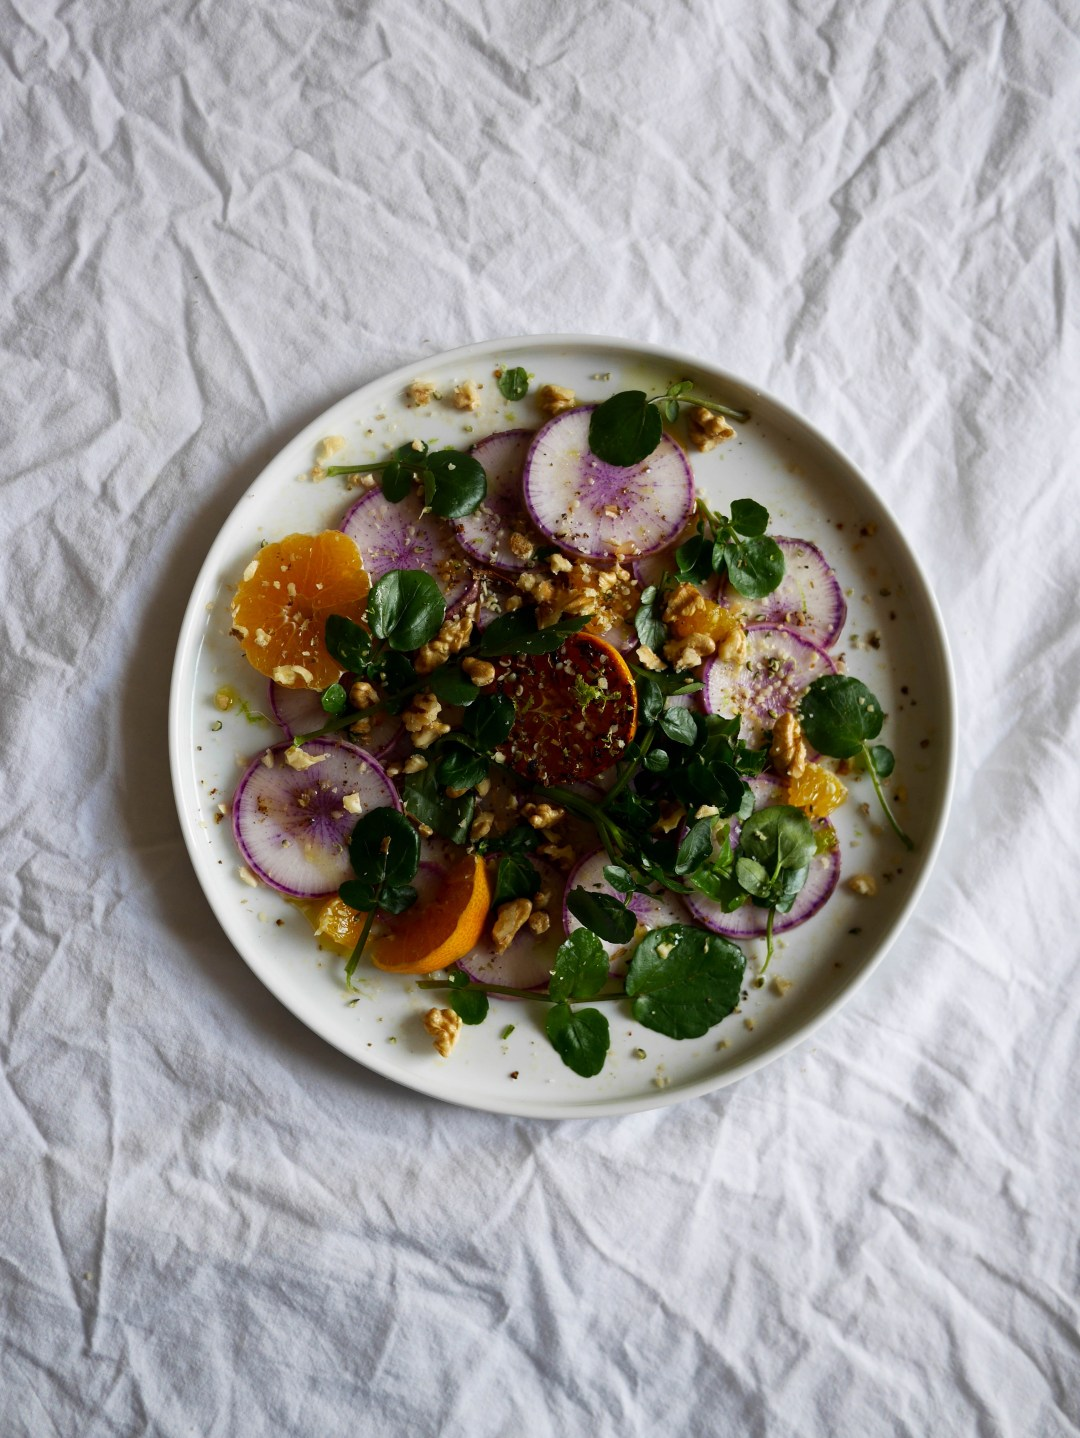 idée-salade-hiver-agrumes-woodmoodfood-marina-rodrigues-catering-annecy-genève-1